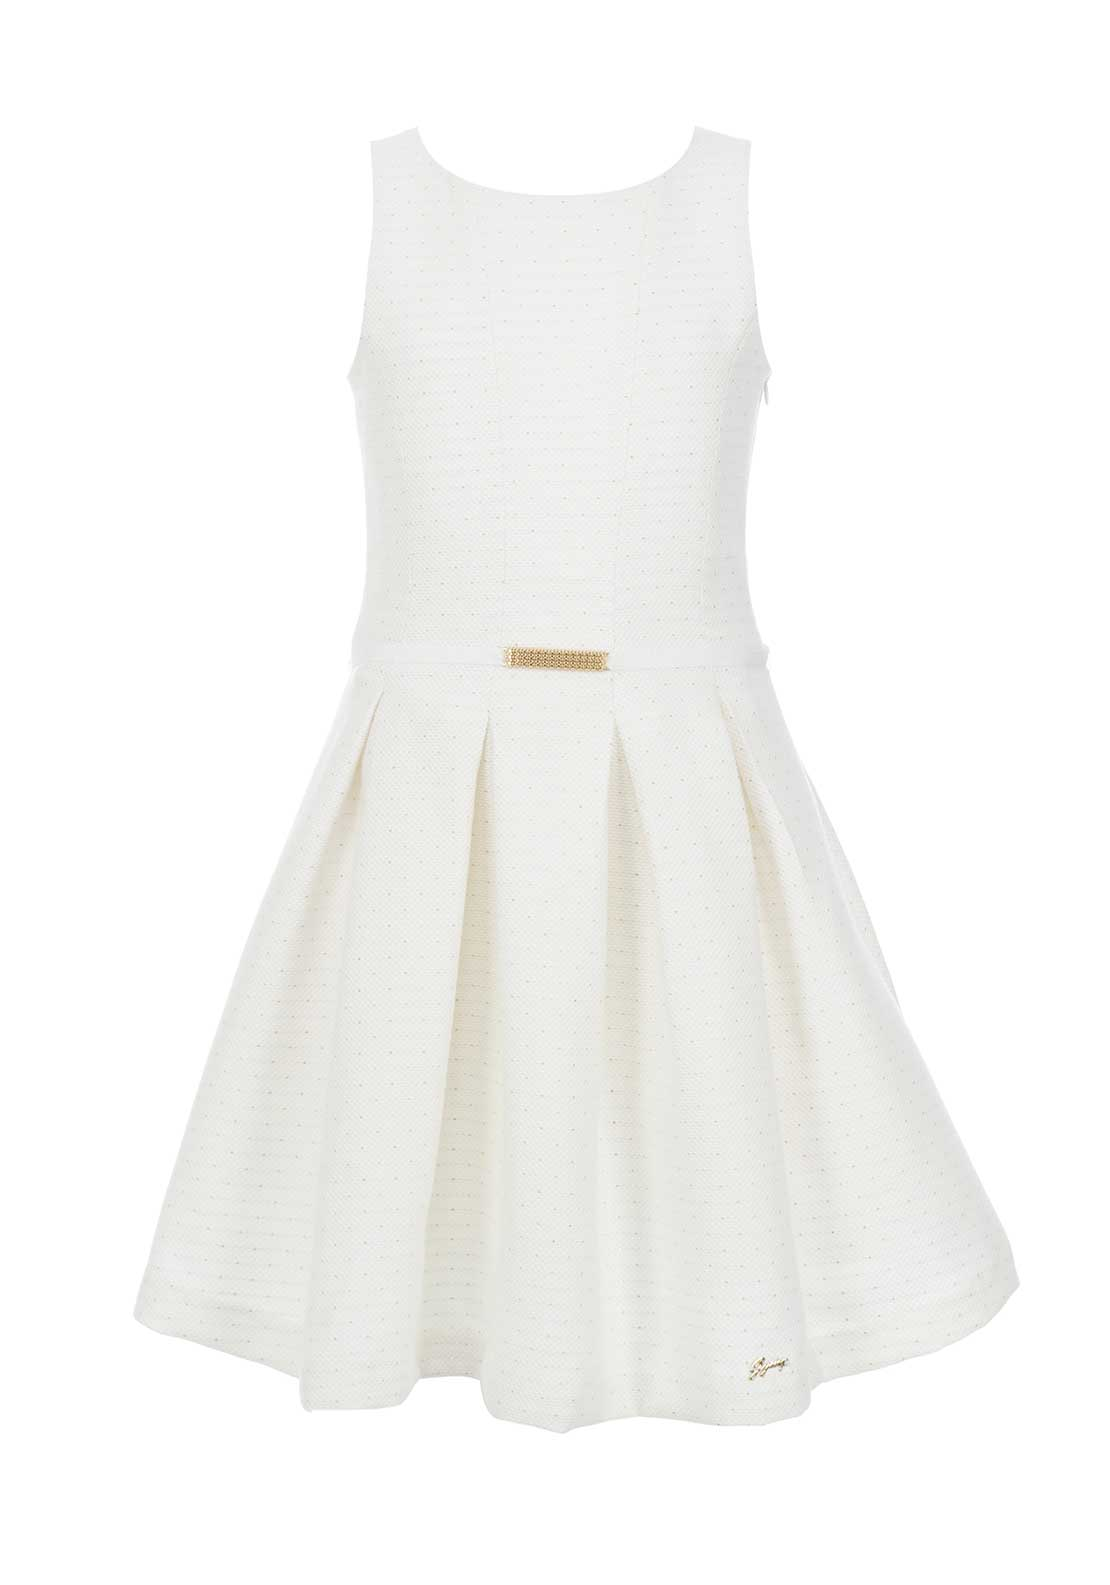 GYMP Girls Embossed Belted Dress, Ivory